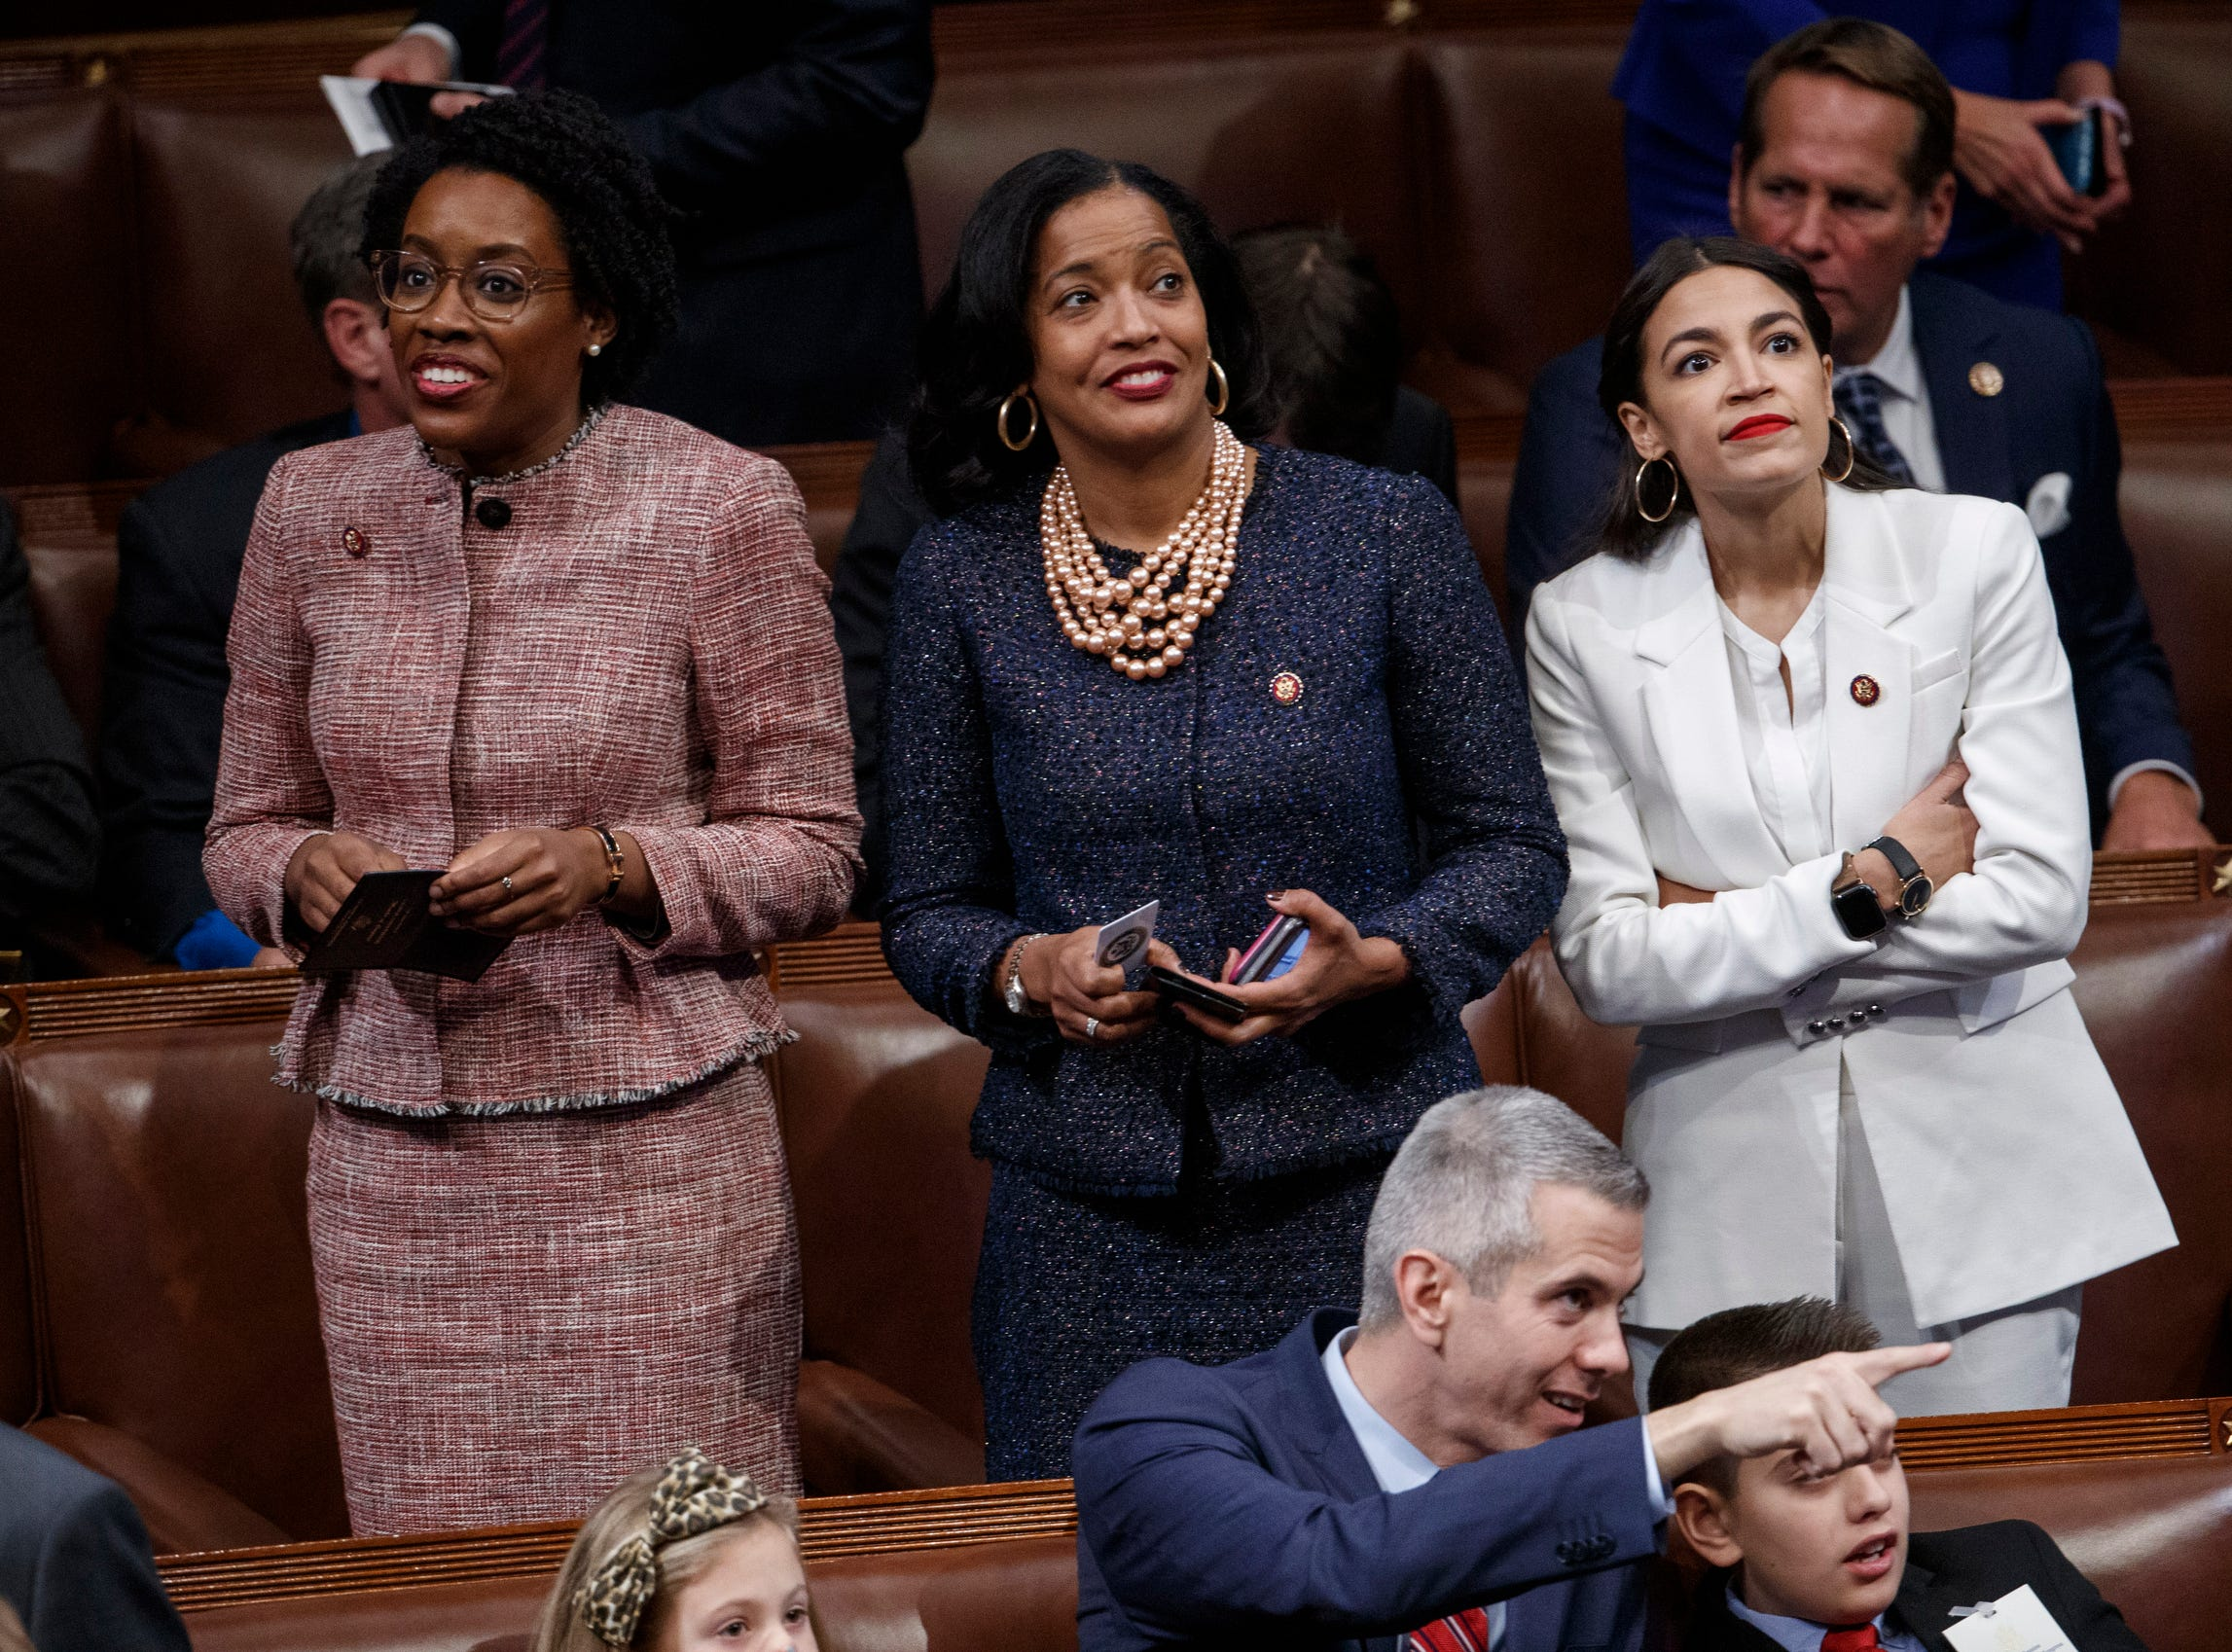 Democratic Representatives Alexandria Ocasio-Cortez (R) and Jahana Hayes (C) and Lauren Underwood (L) take in the scene during the opening session of the 116th Congress.